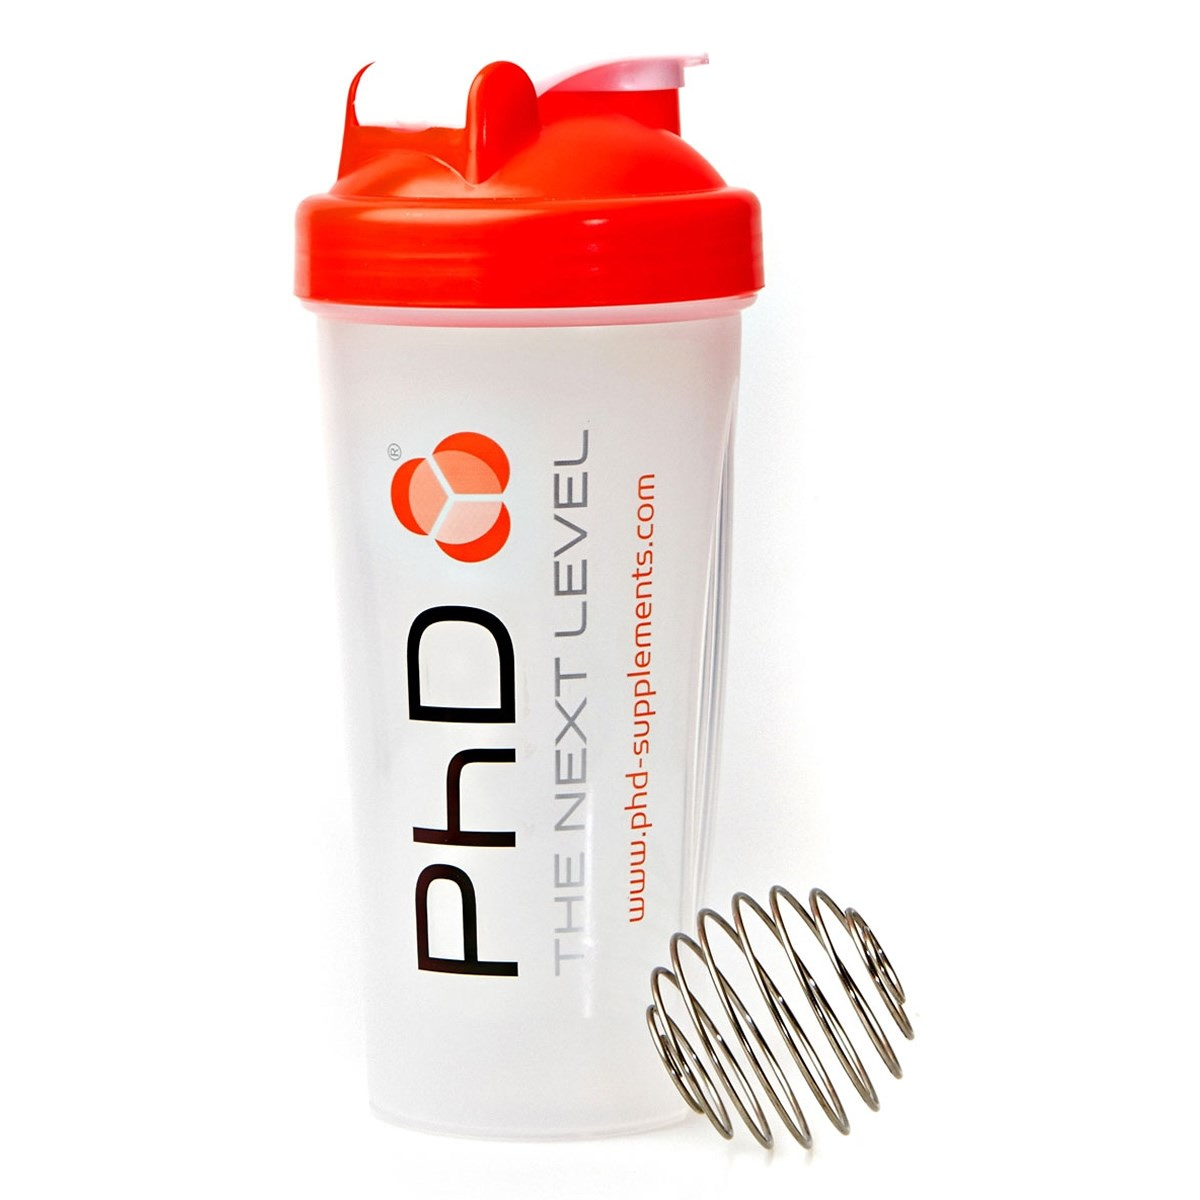 PhD Nutrition Mix-Ball Shaker Cup 750ml